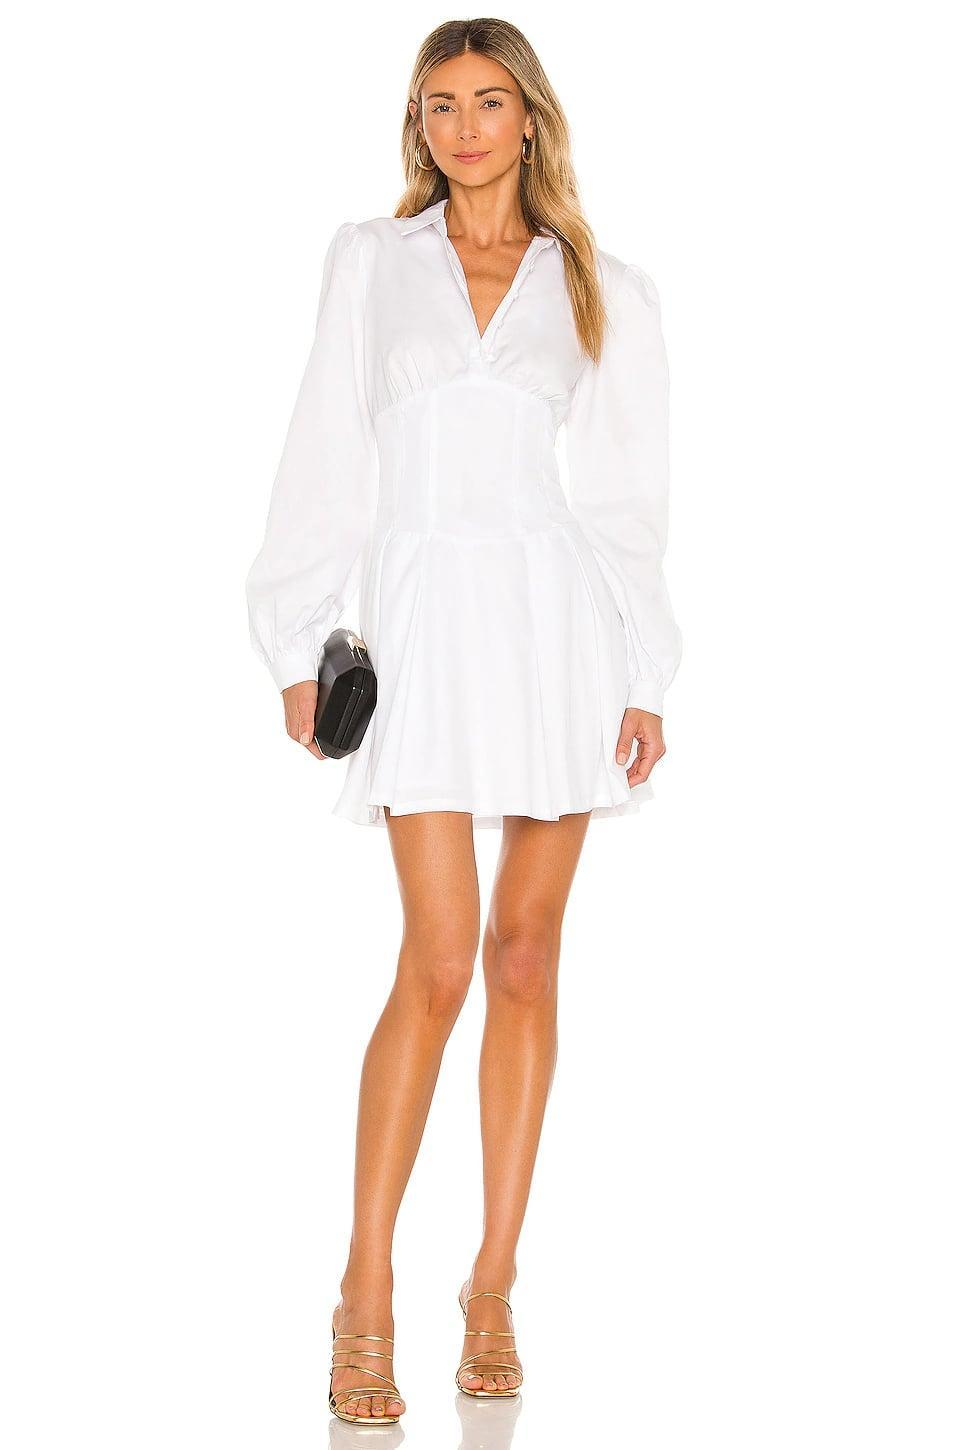 <p>This <span>Bardot Maya Poplin Shirt Dress</span> ($119) is fitted with a corset-like style at the waist. It's so flattering, and we want to wear this everywhere.</p>